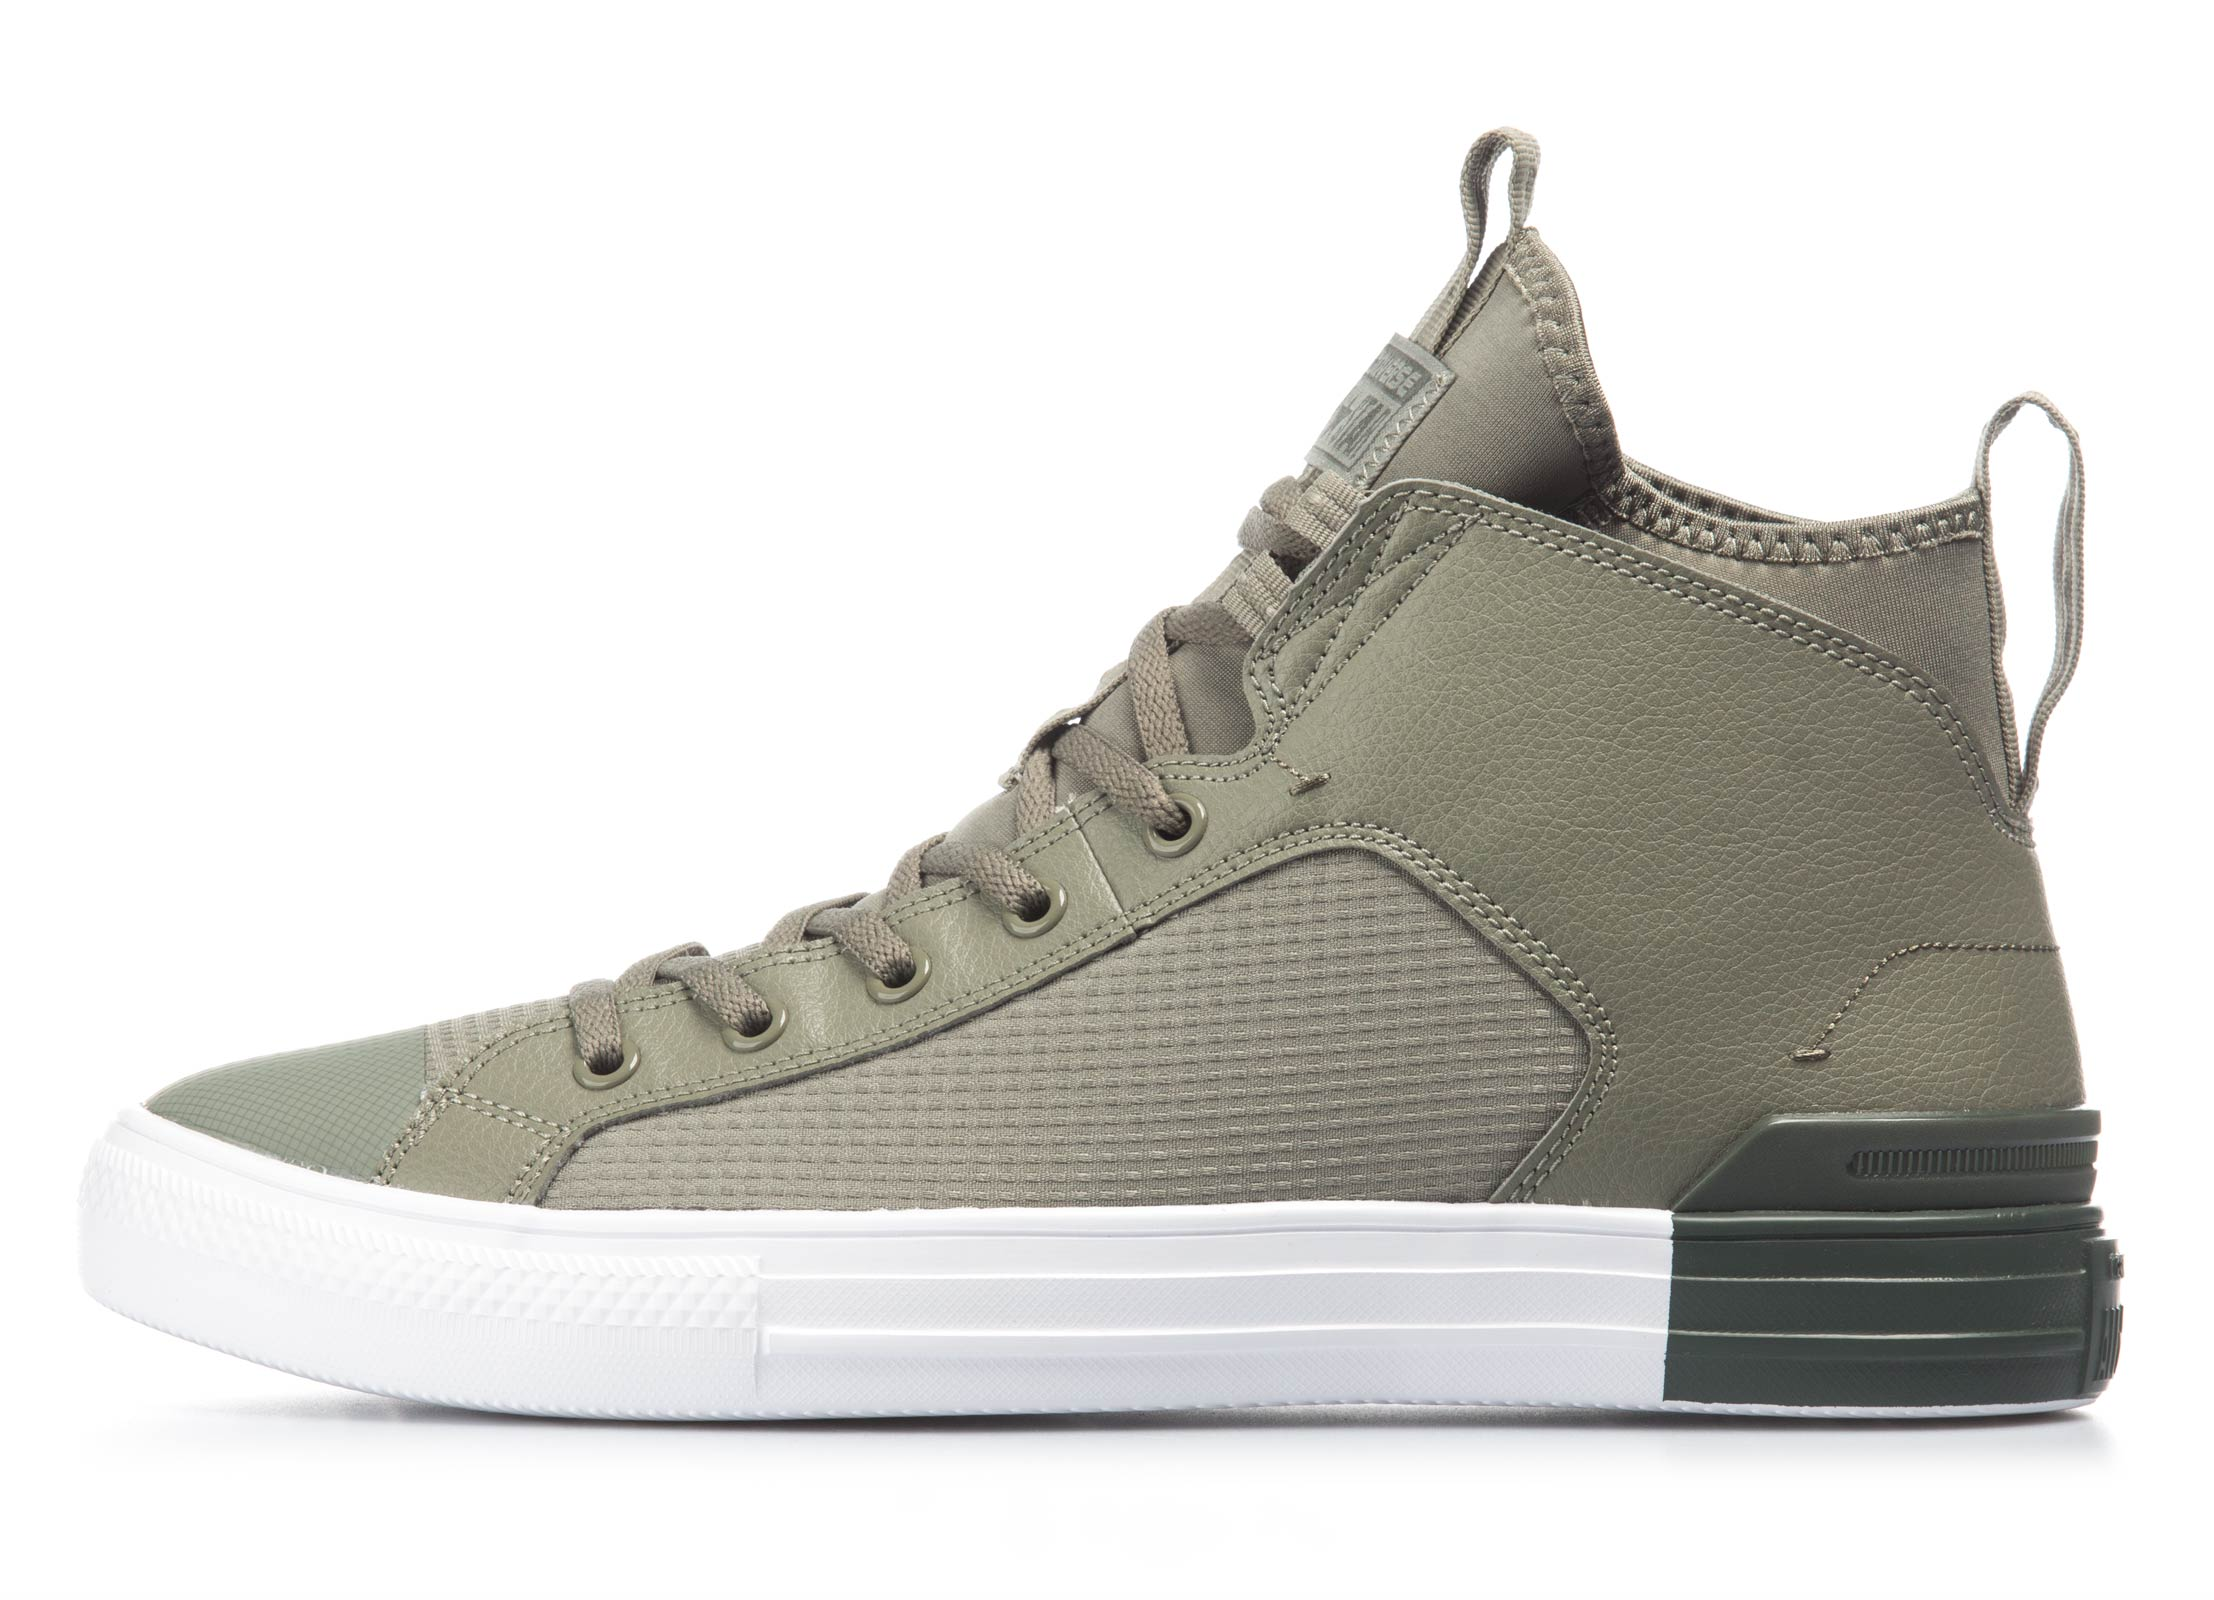 Converse Chuck Taylor All Star Ultra Mid 159626C Χακί